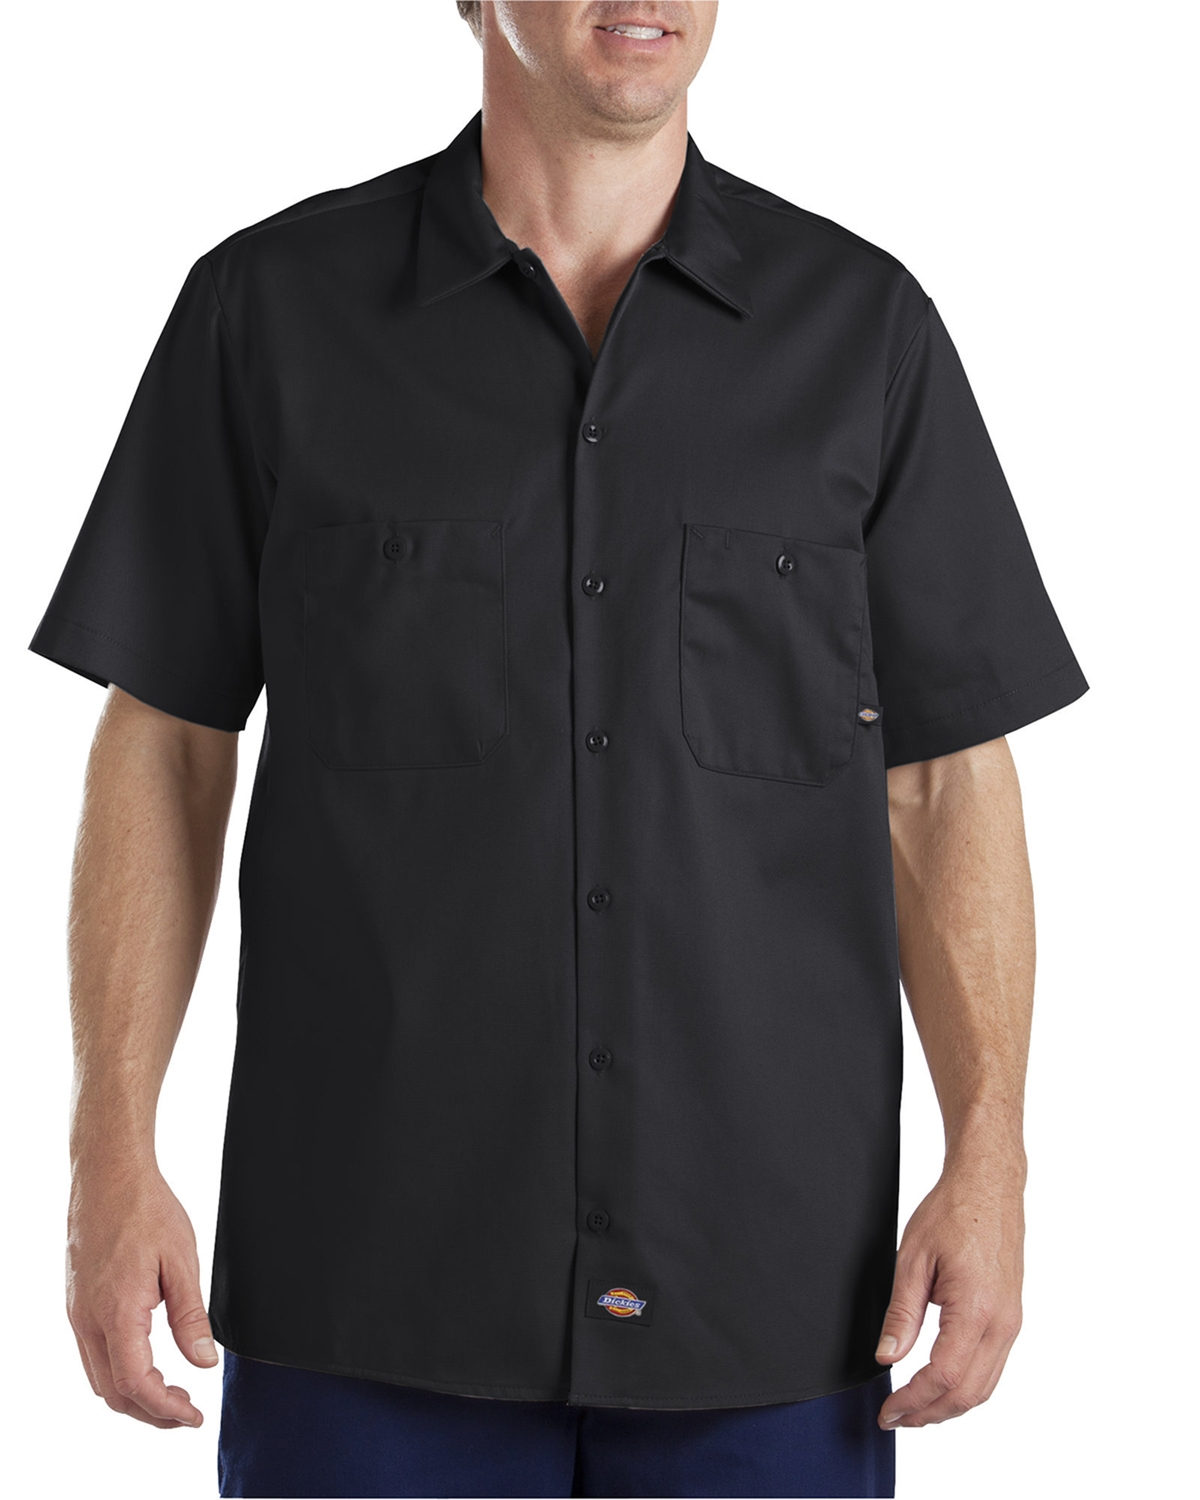 Dickies Drop Ship - LS307 Industrial Short-Sleeve Cotton ...